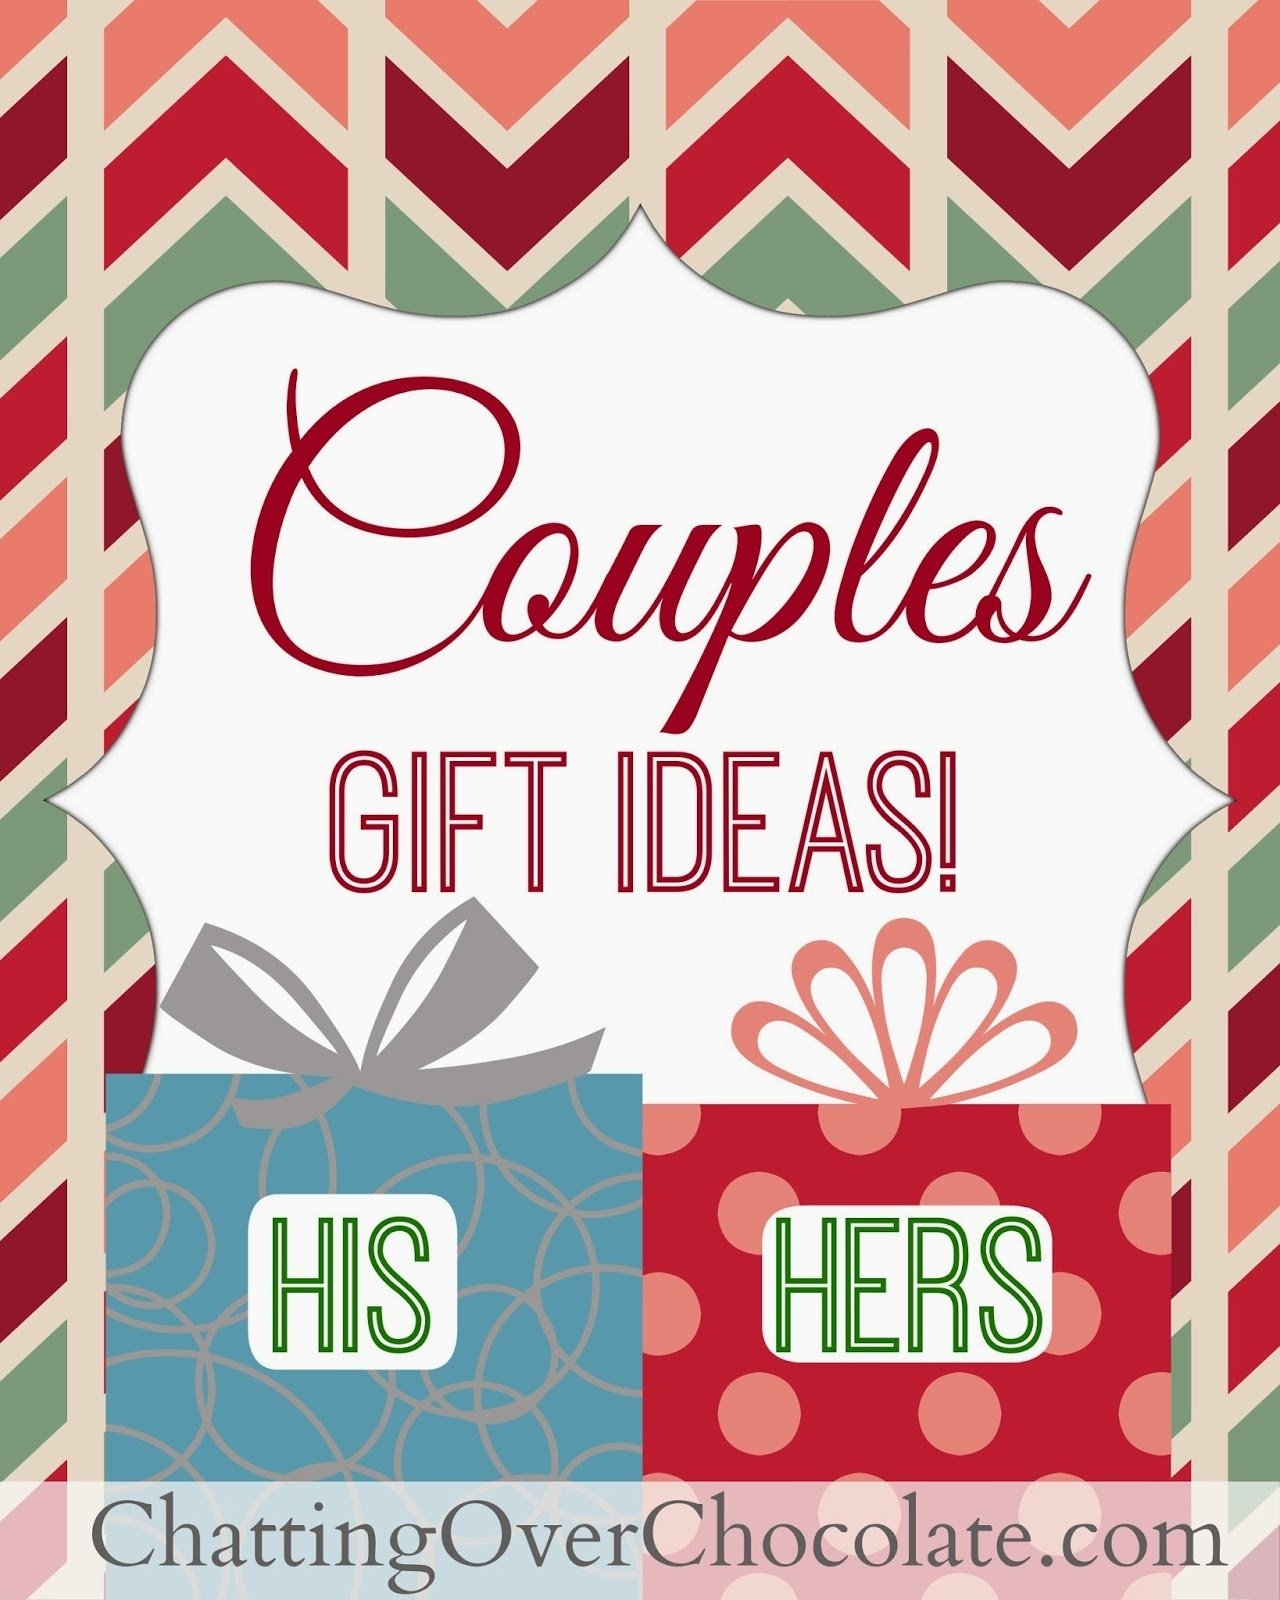 10 Lovely Couples Gift Ideas For Christmas chatting over chocolate his hers gift ideas couples gift giving 3 2020